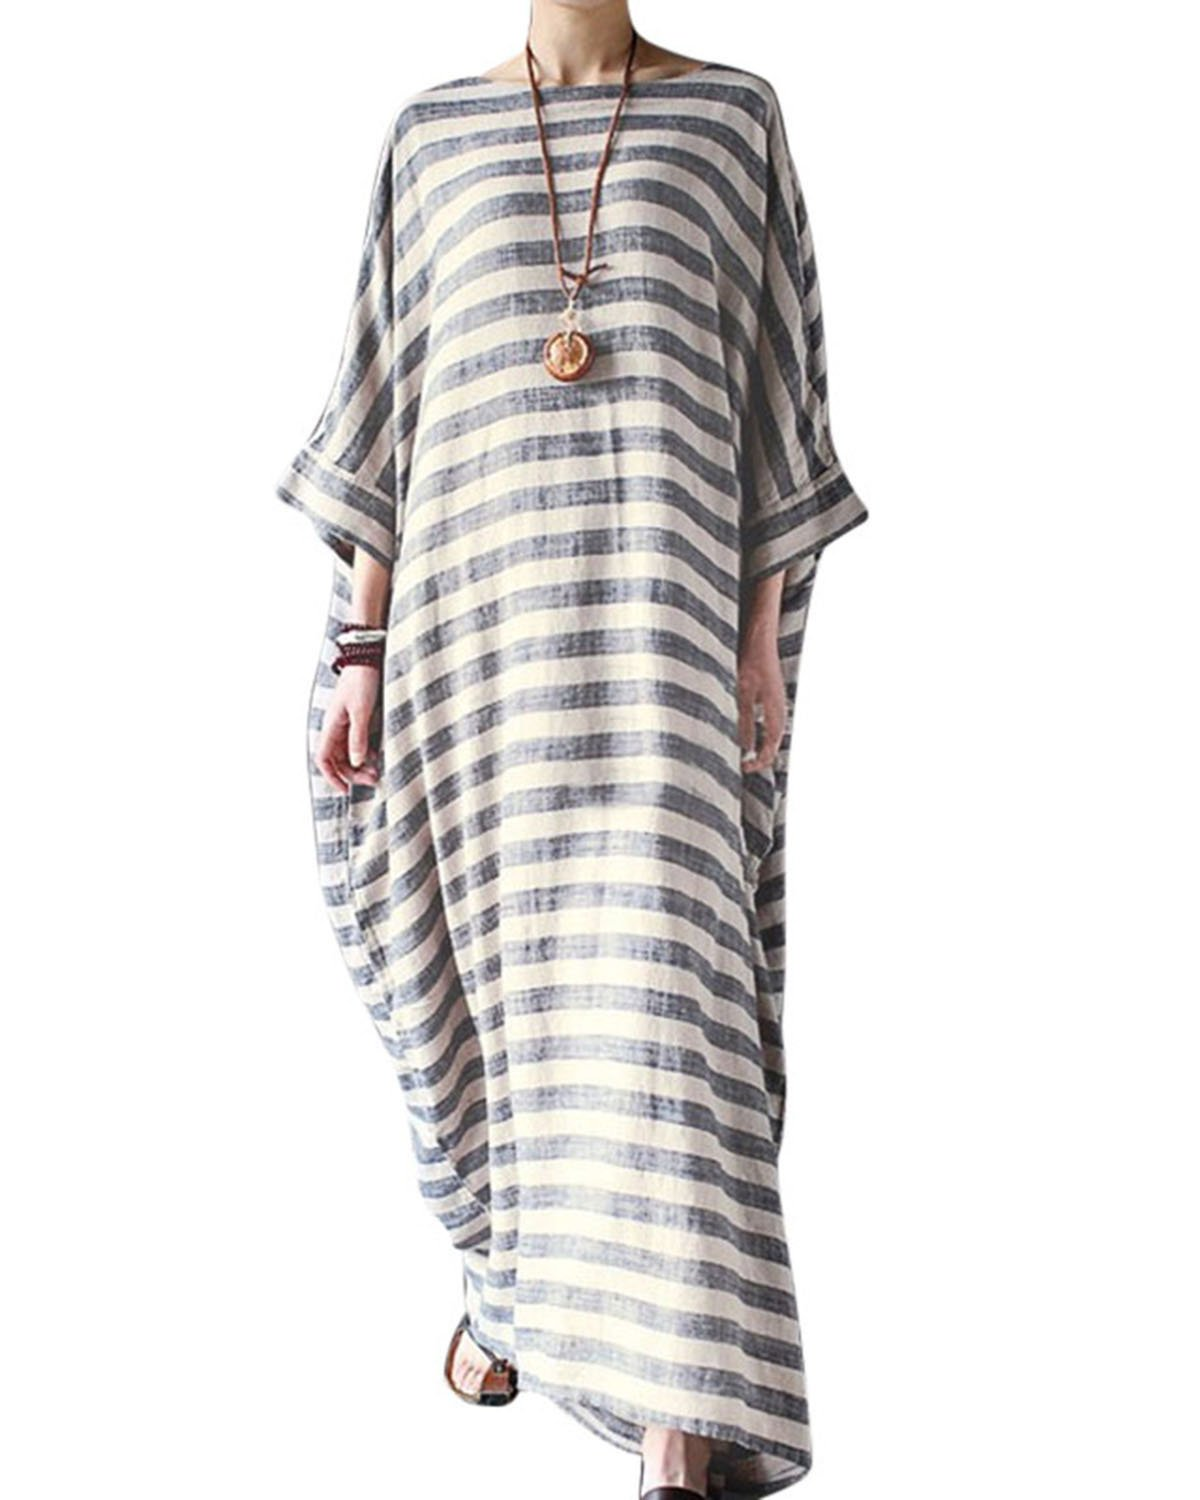 Jacansi Women Beach Party Striped Round Neck Batwing Sleeve Plus-Size Baggy Long Dress S